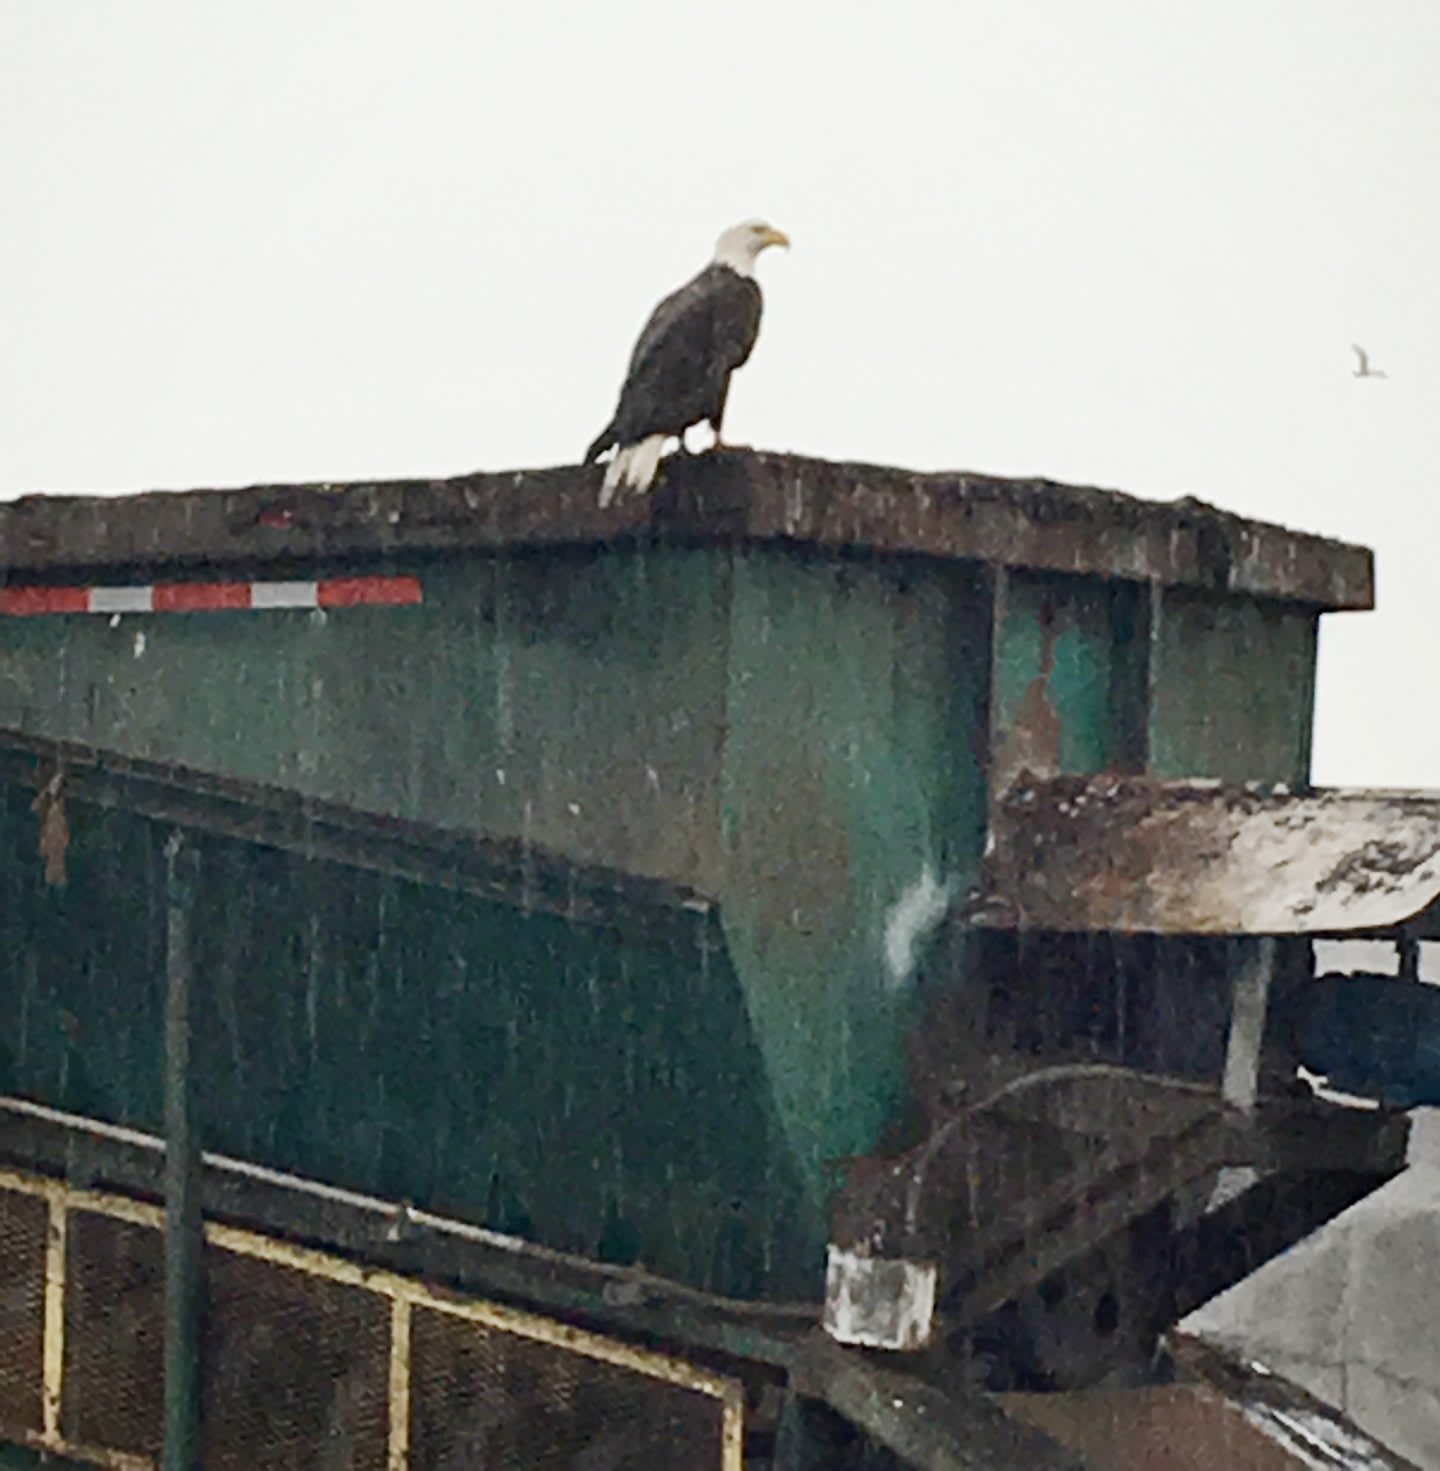 Eagle perching on a compost truck at farm, animals, wildlife, Reebok, Mike Andrews